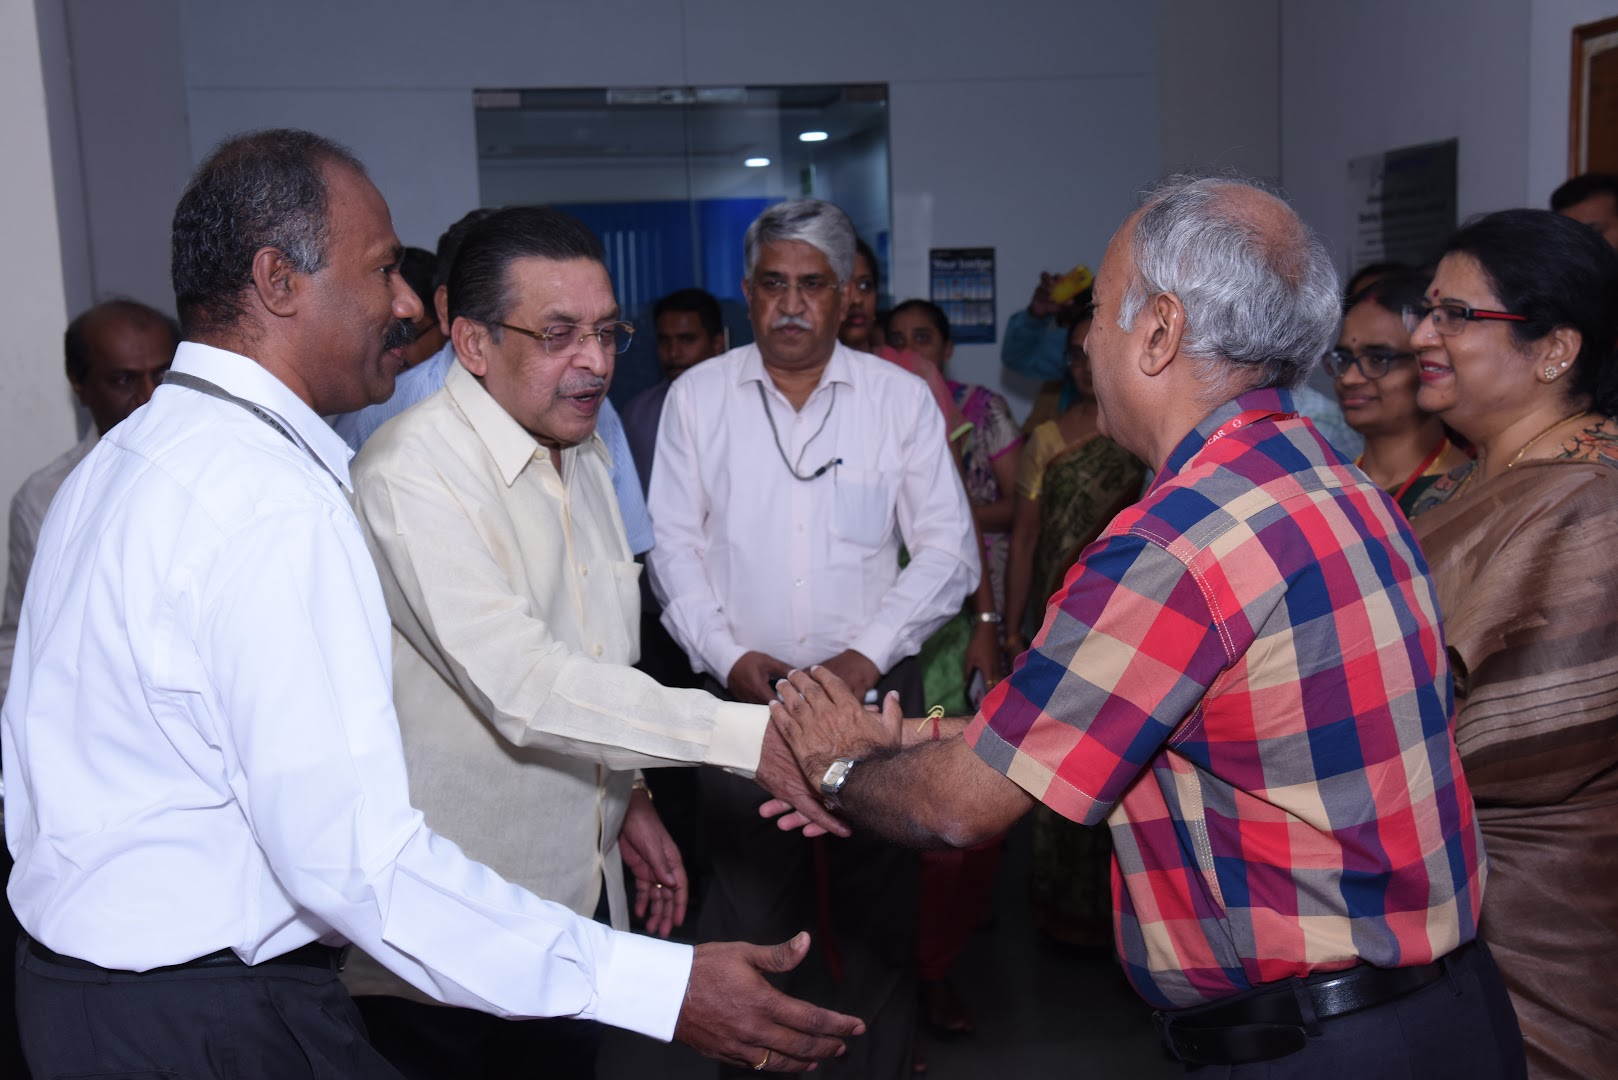 Inauguration of Center for Excellence for Imaging Technologies (CIT) Lab and Screening Room